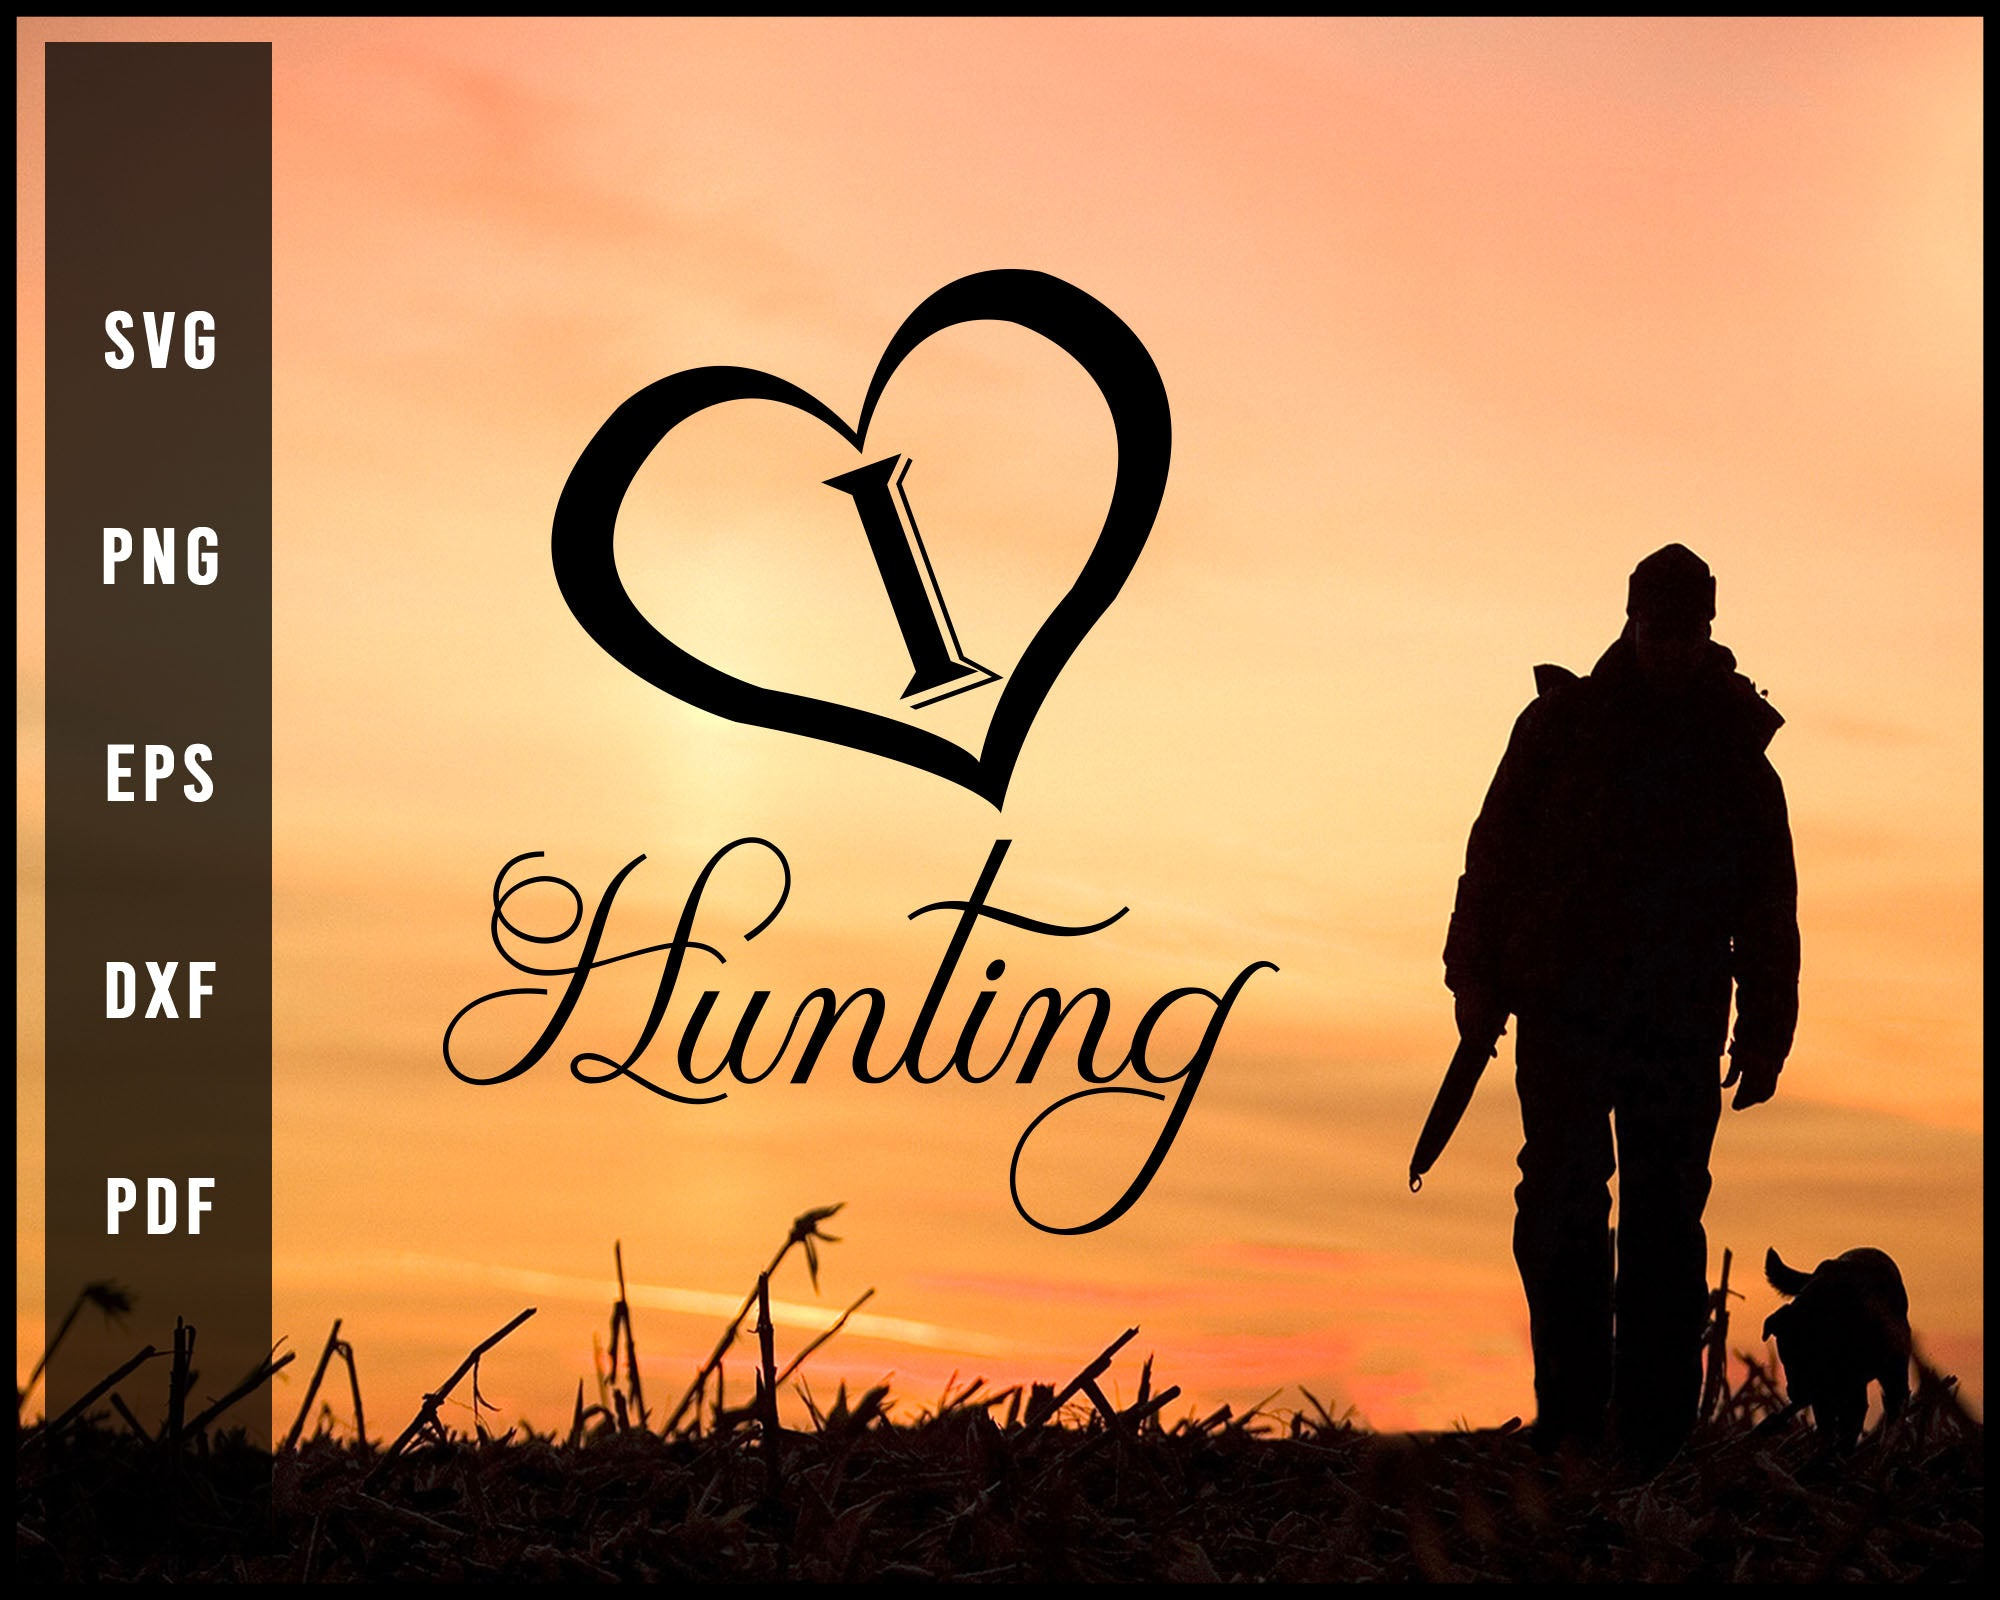 I Love Hunting svg png Silhouette Designs For Cricut And Printable Files